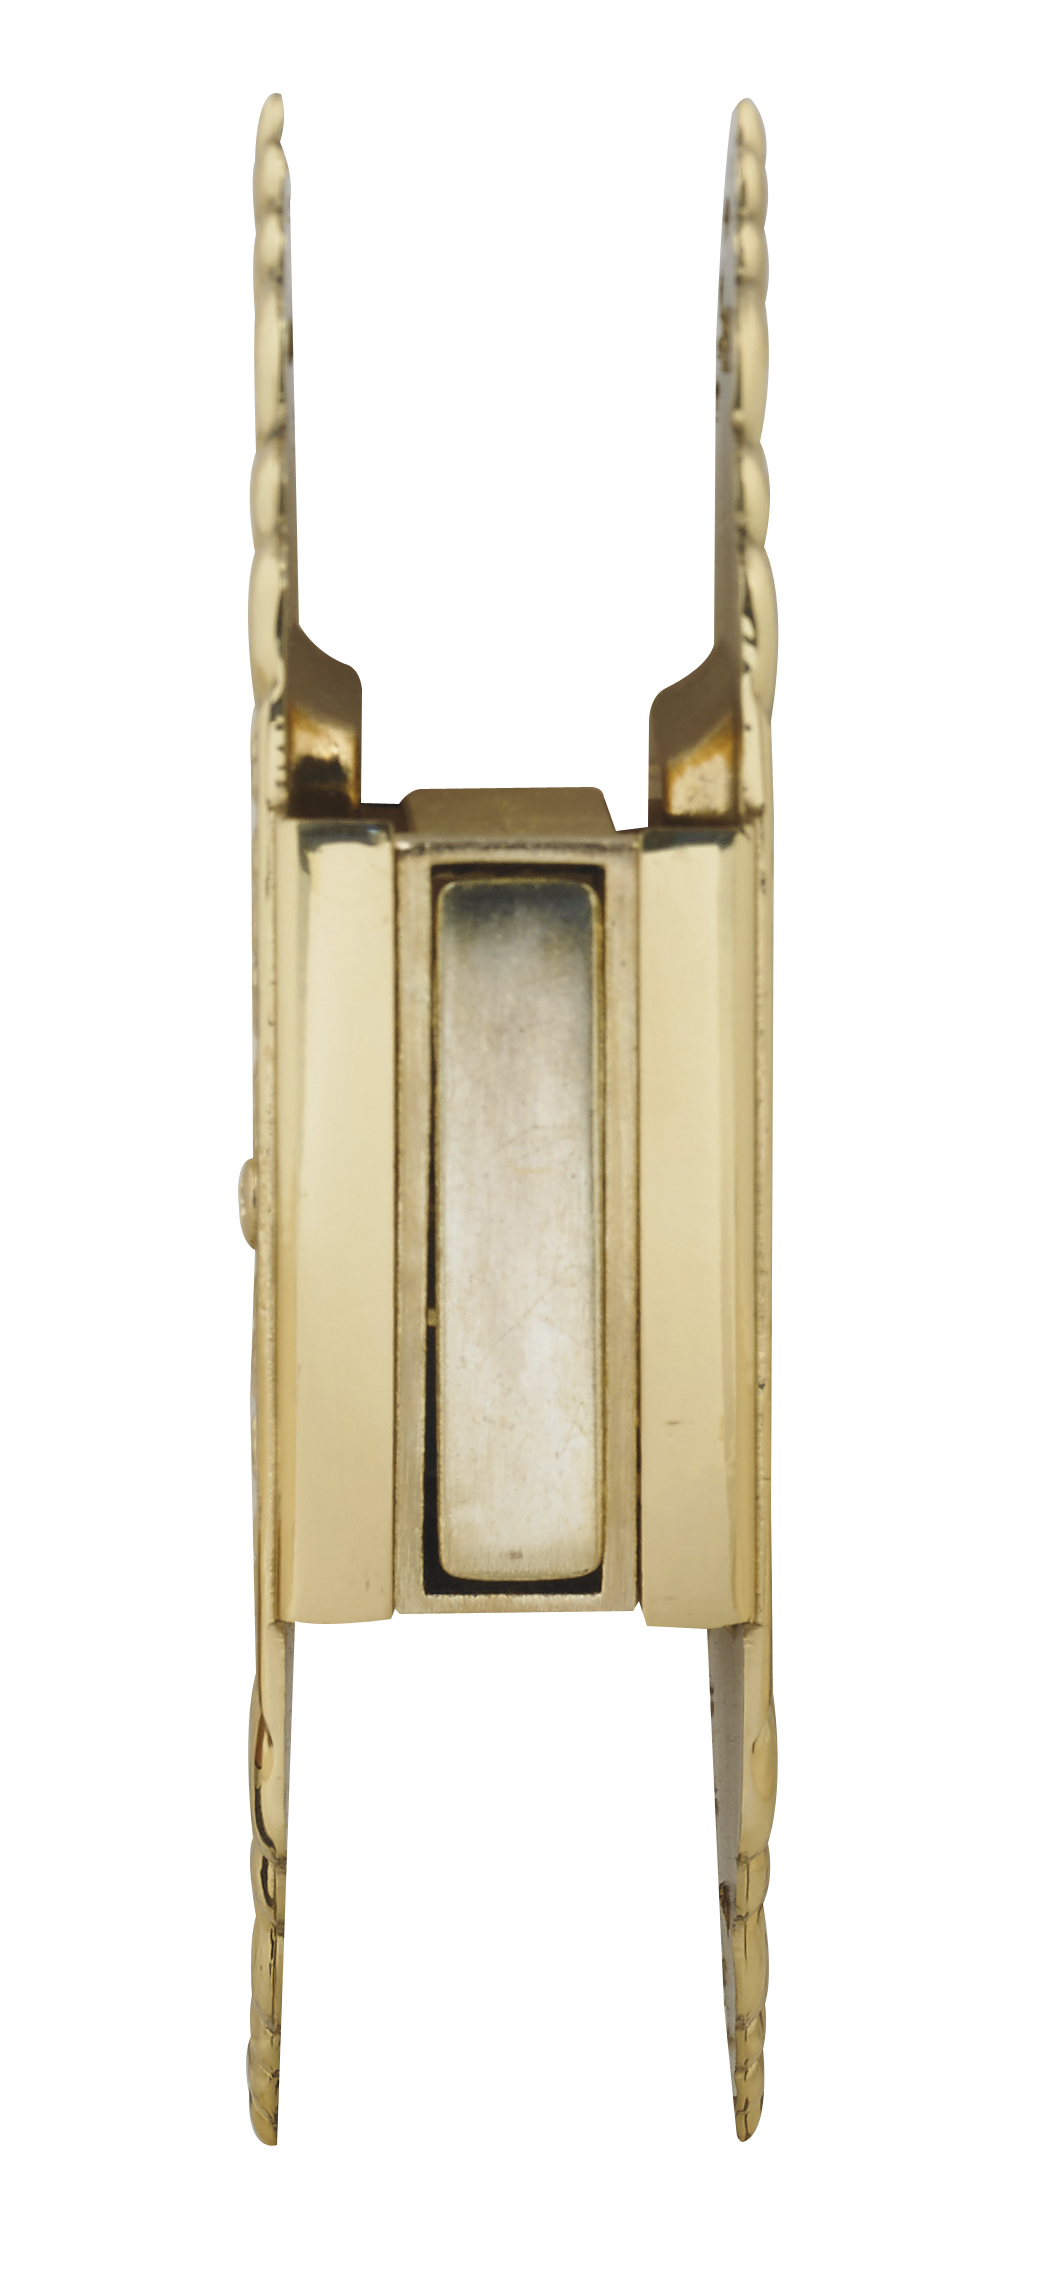 DARBY 2 POCKET DOOR PULL SOLID DECORATIVE BRASS POCKET TRIM SET WITH PASSAGE MORTISE Ornate